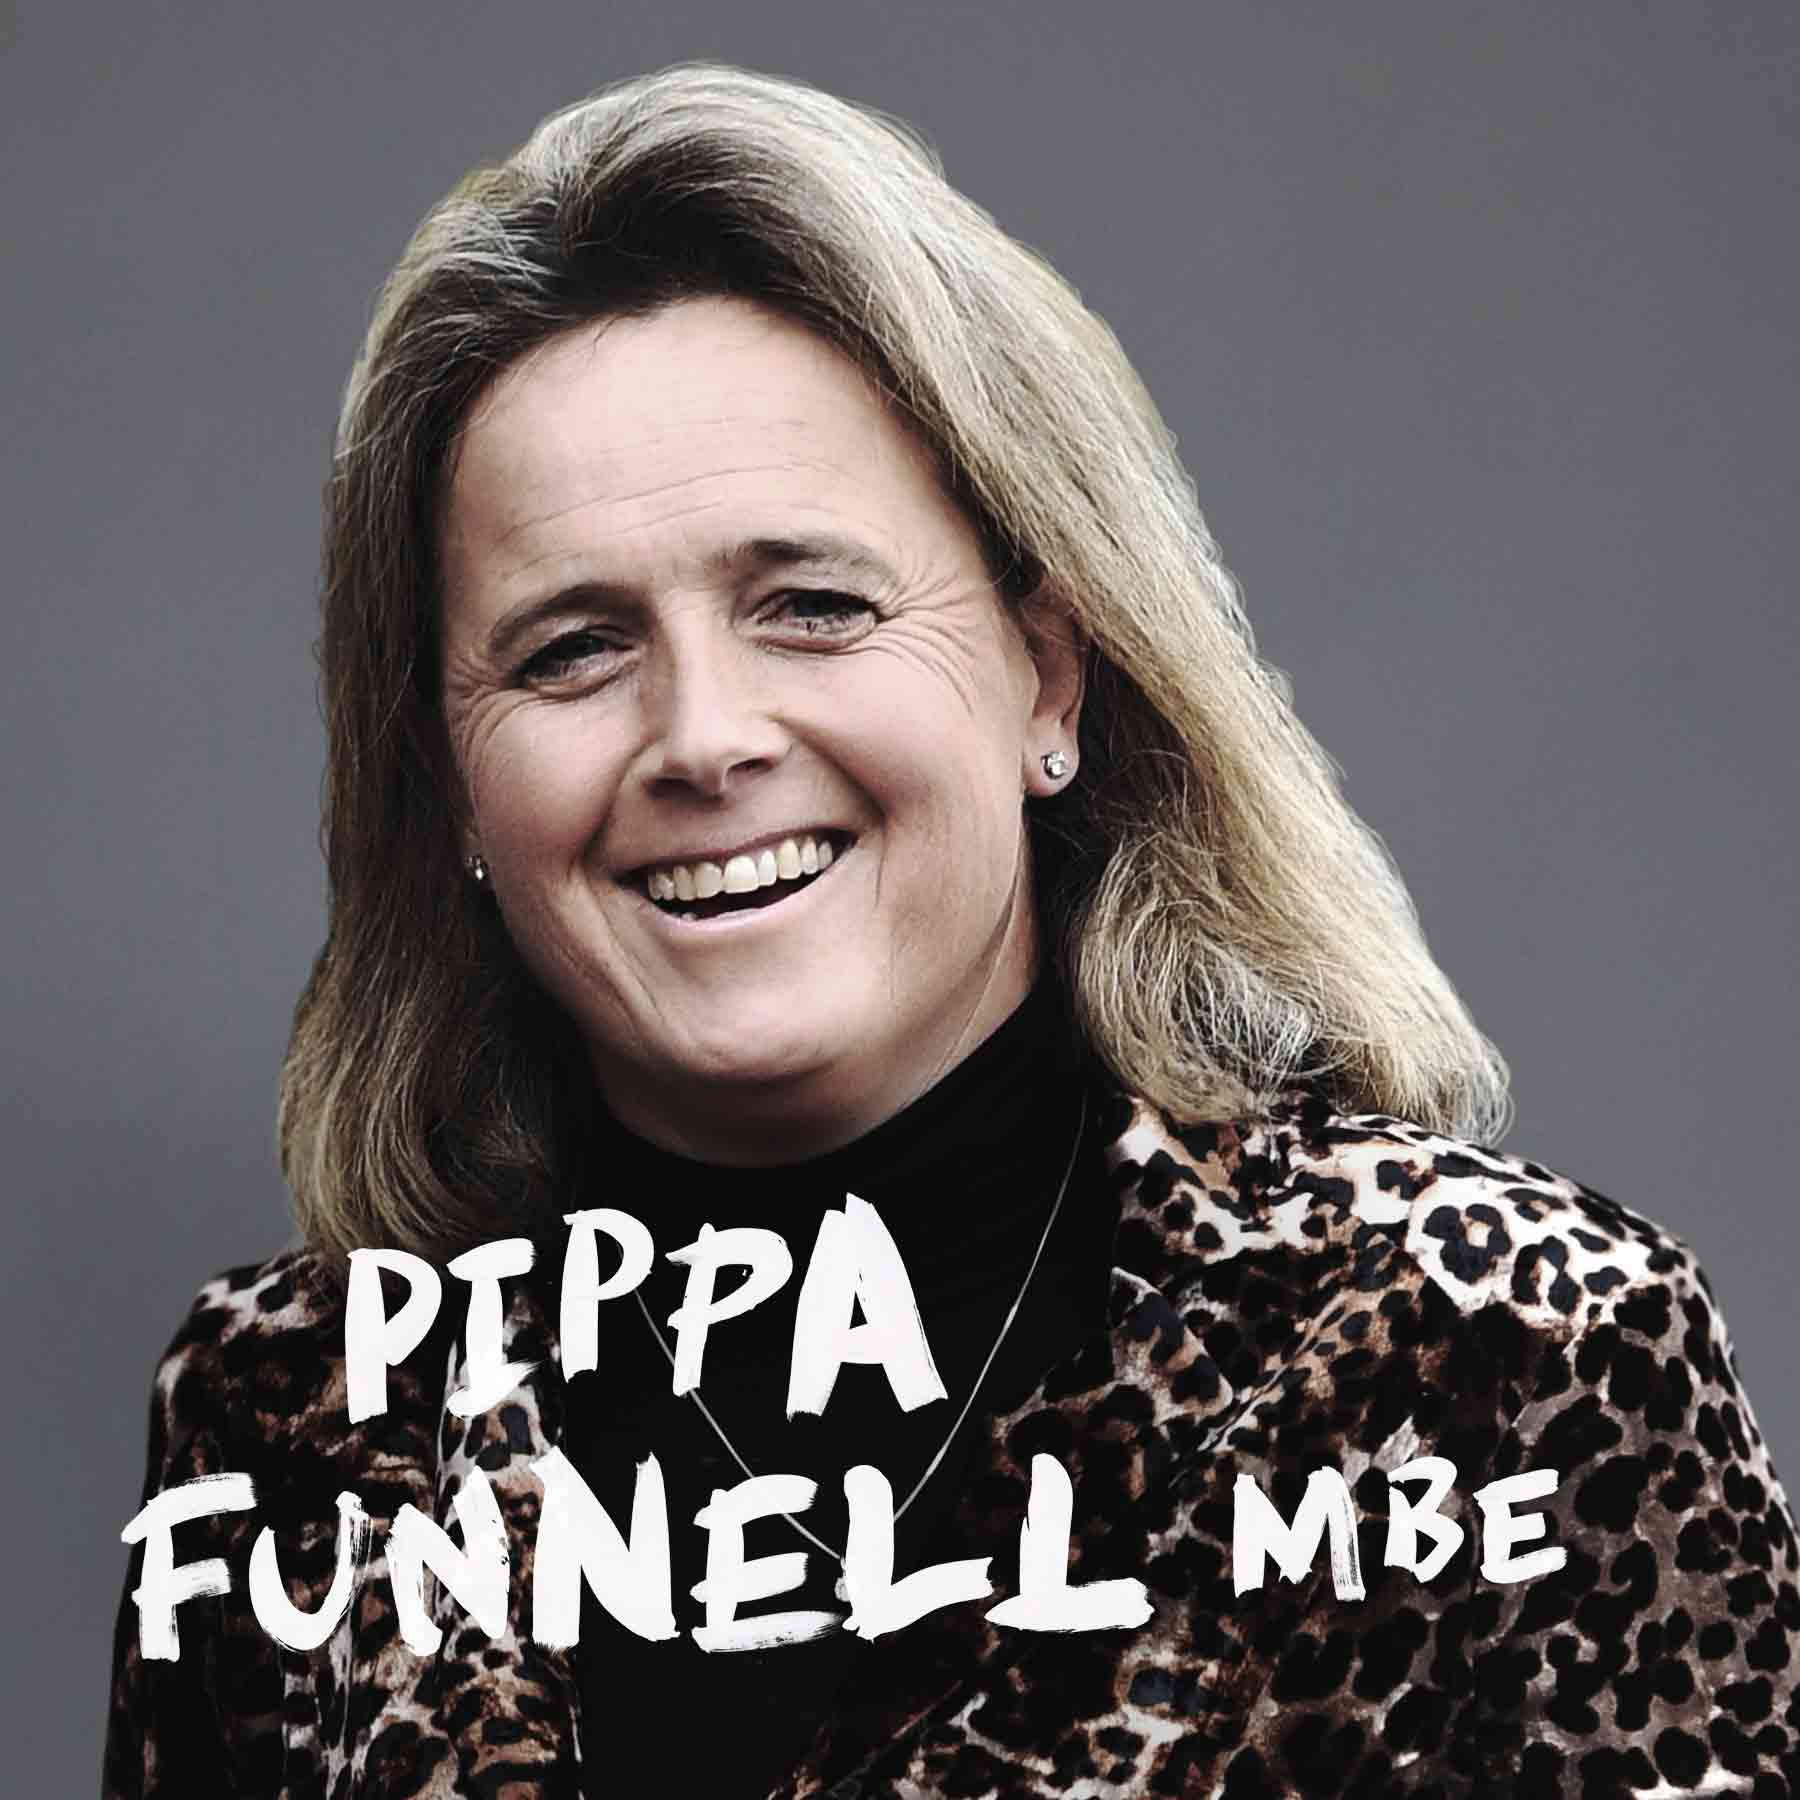 Pippa Funnell MBE